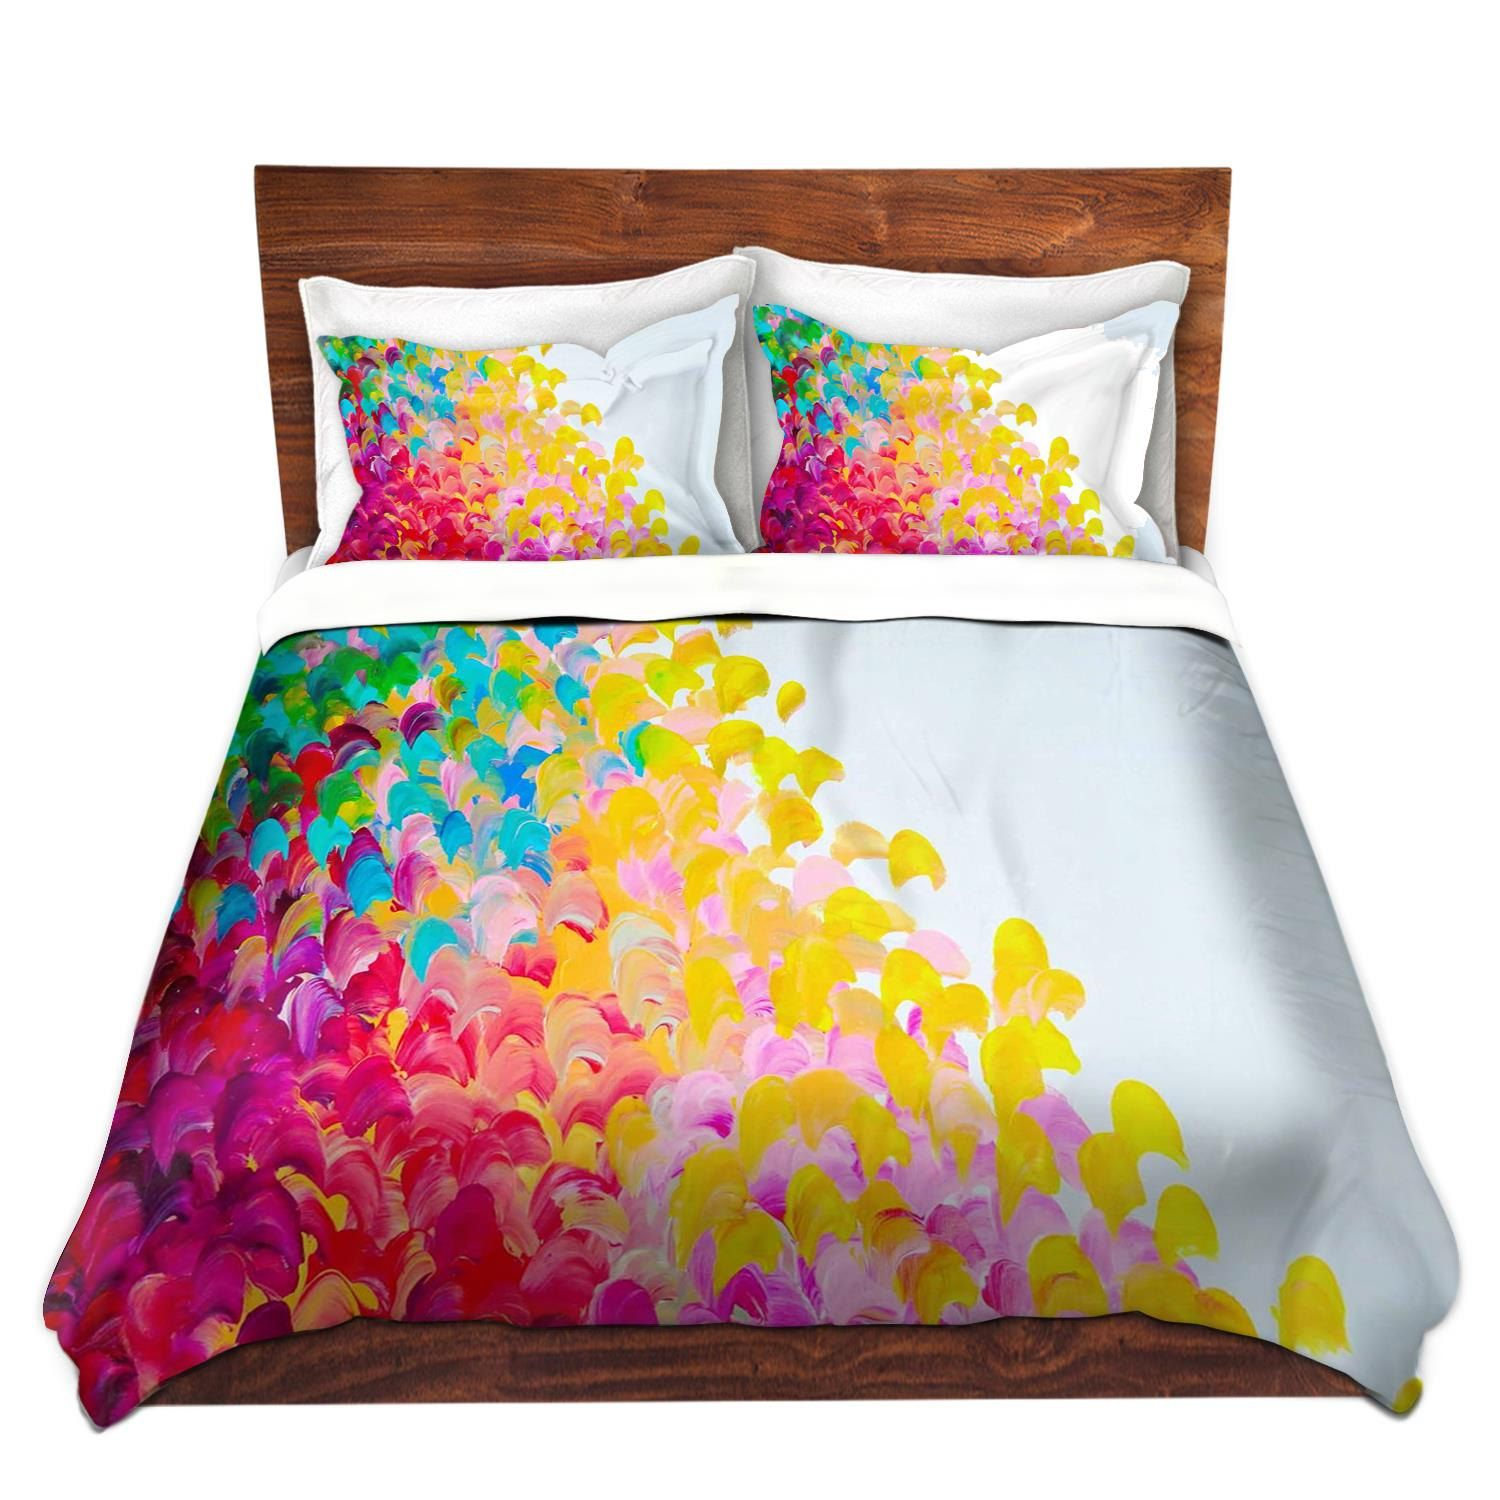 Cheap Doona Covers Rainbow Fine Art Rainbow Duvet Covers King Queen Twin